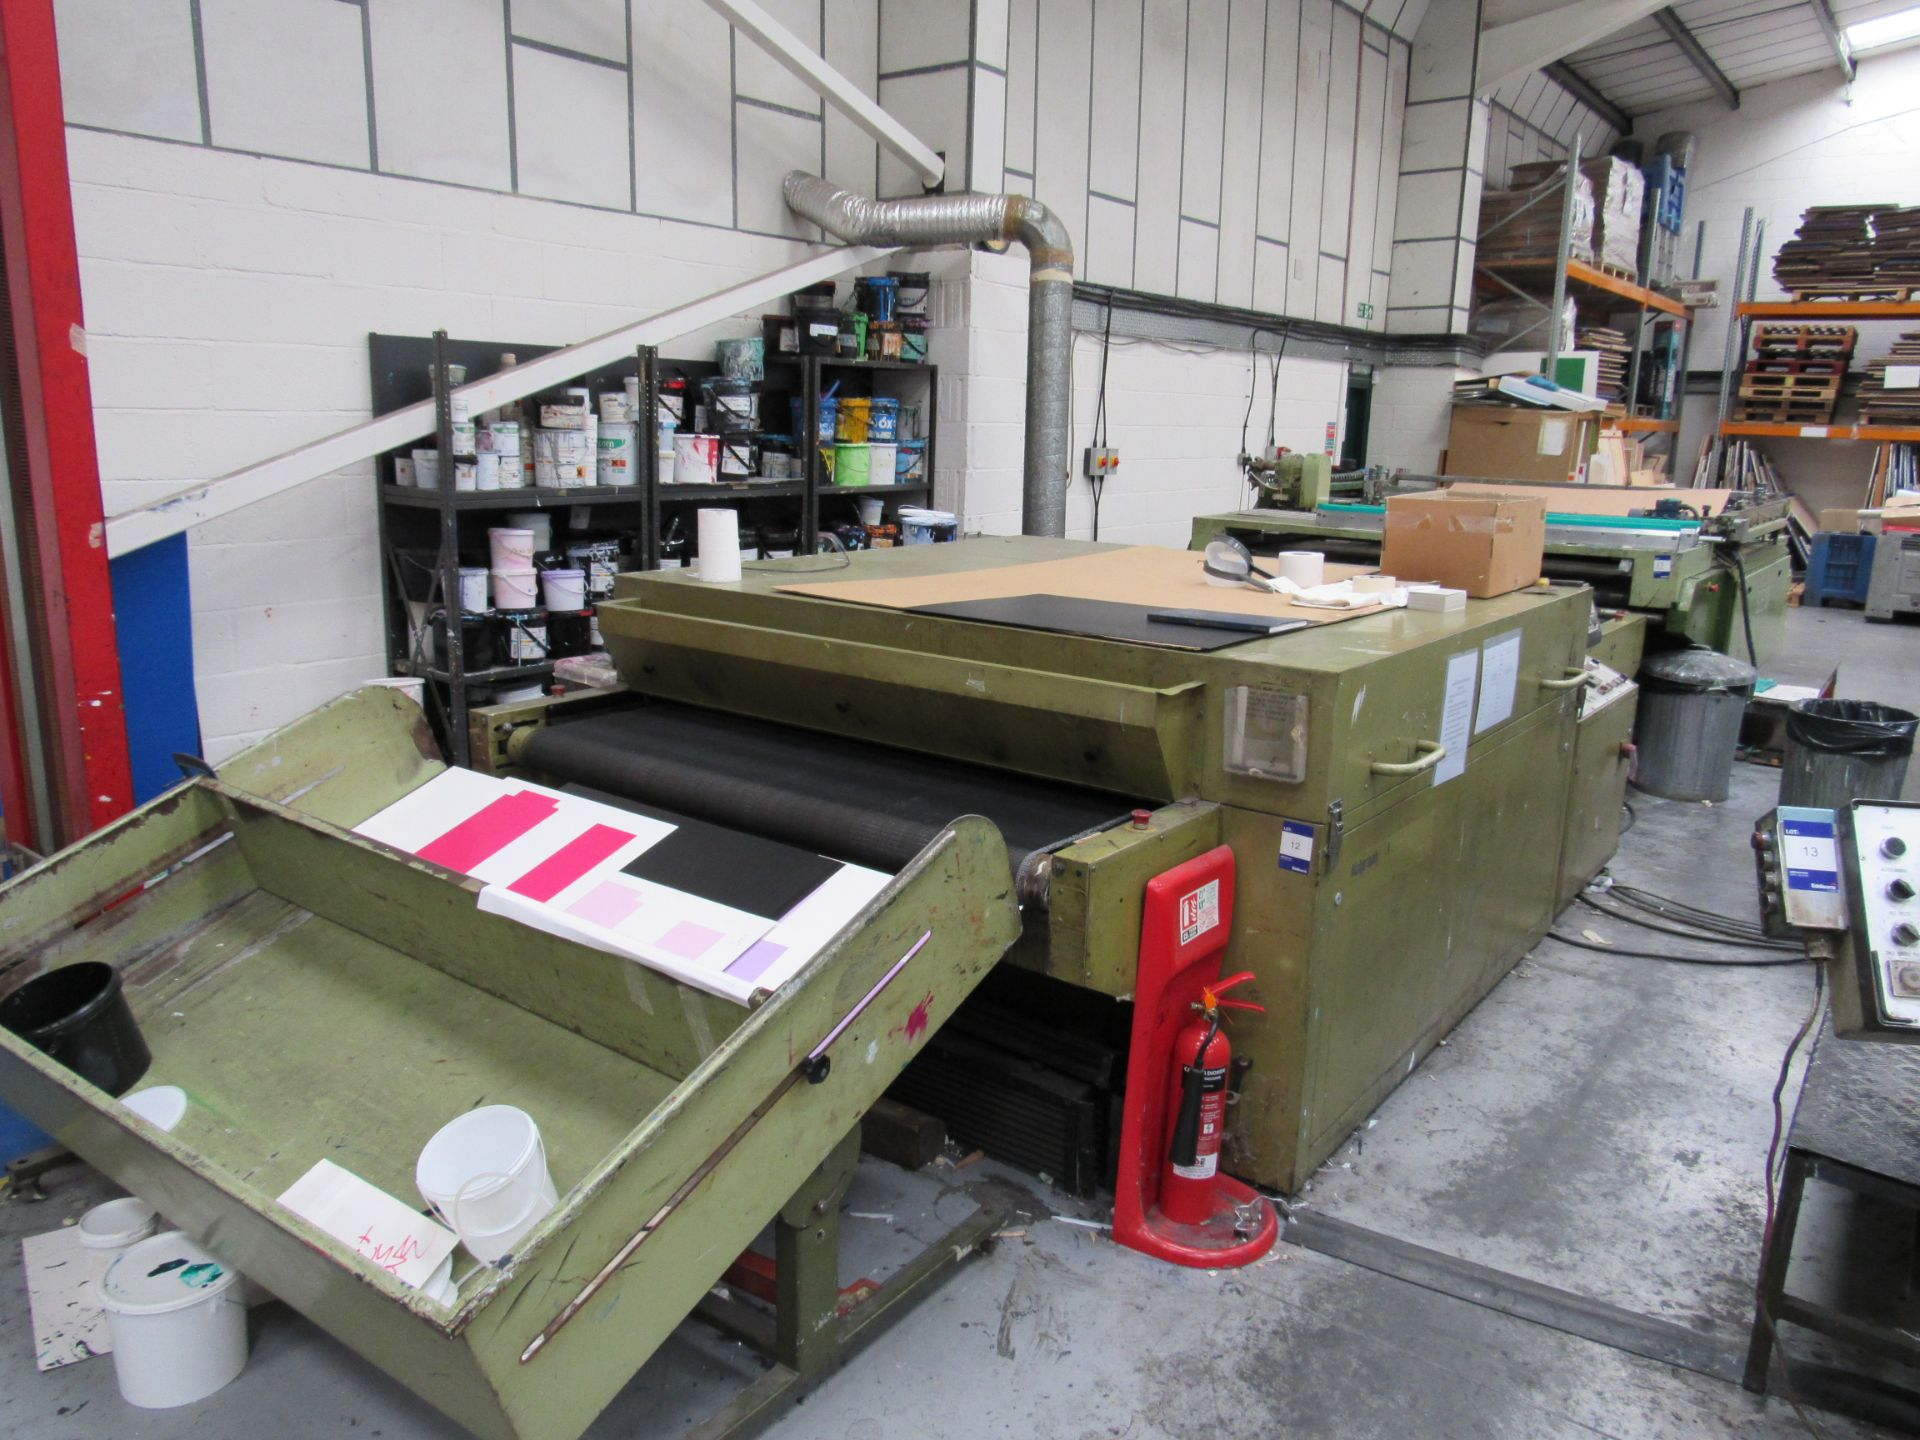 Sias Print Serifast 117.180 Screen Printer Serial Number 88745 with Natgraph 155-2000E UV Dryer Line - Image 5 of 10